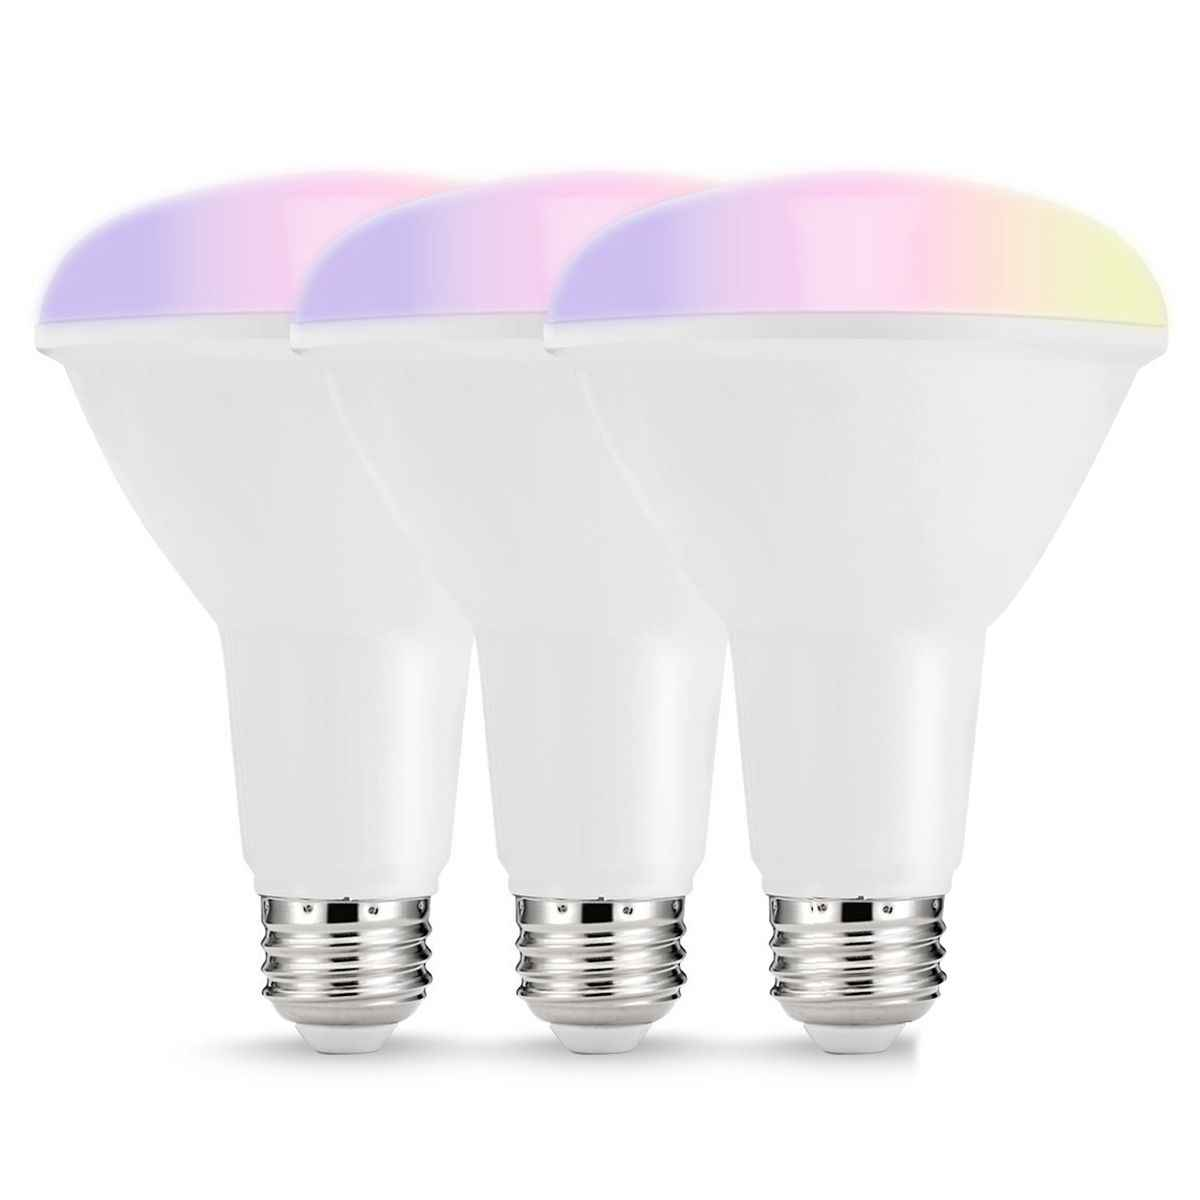 Smart Led Bulbs Multicolored Wifi Led Lights Br30 Dimmable Recessed Light Bulbs 75w80w Equivalent Flood Light Compat Led Bulbs Tubes Aliexpress